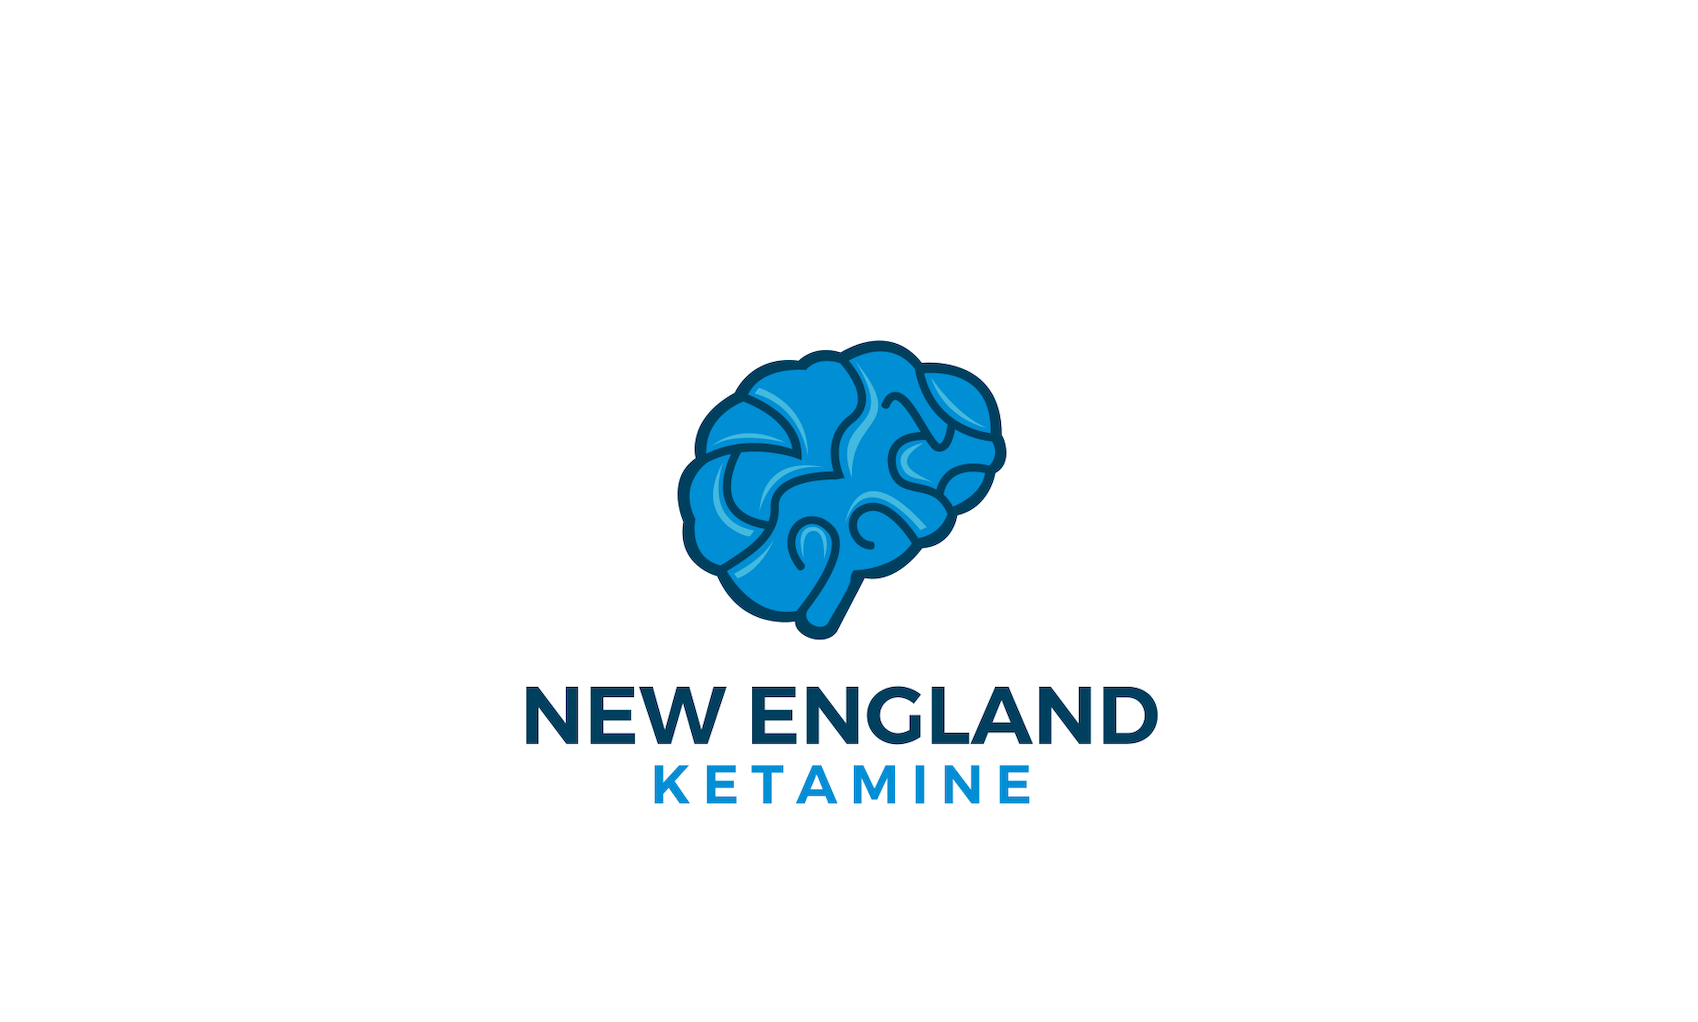 New England Ketamine logo